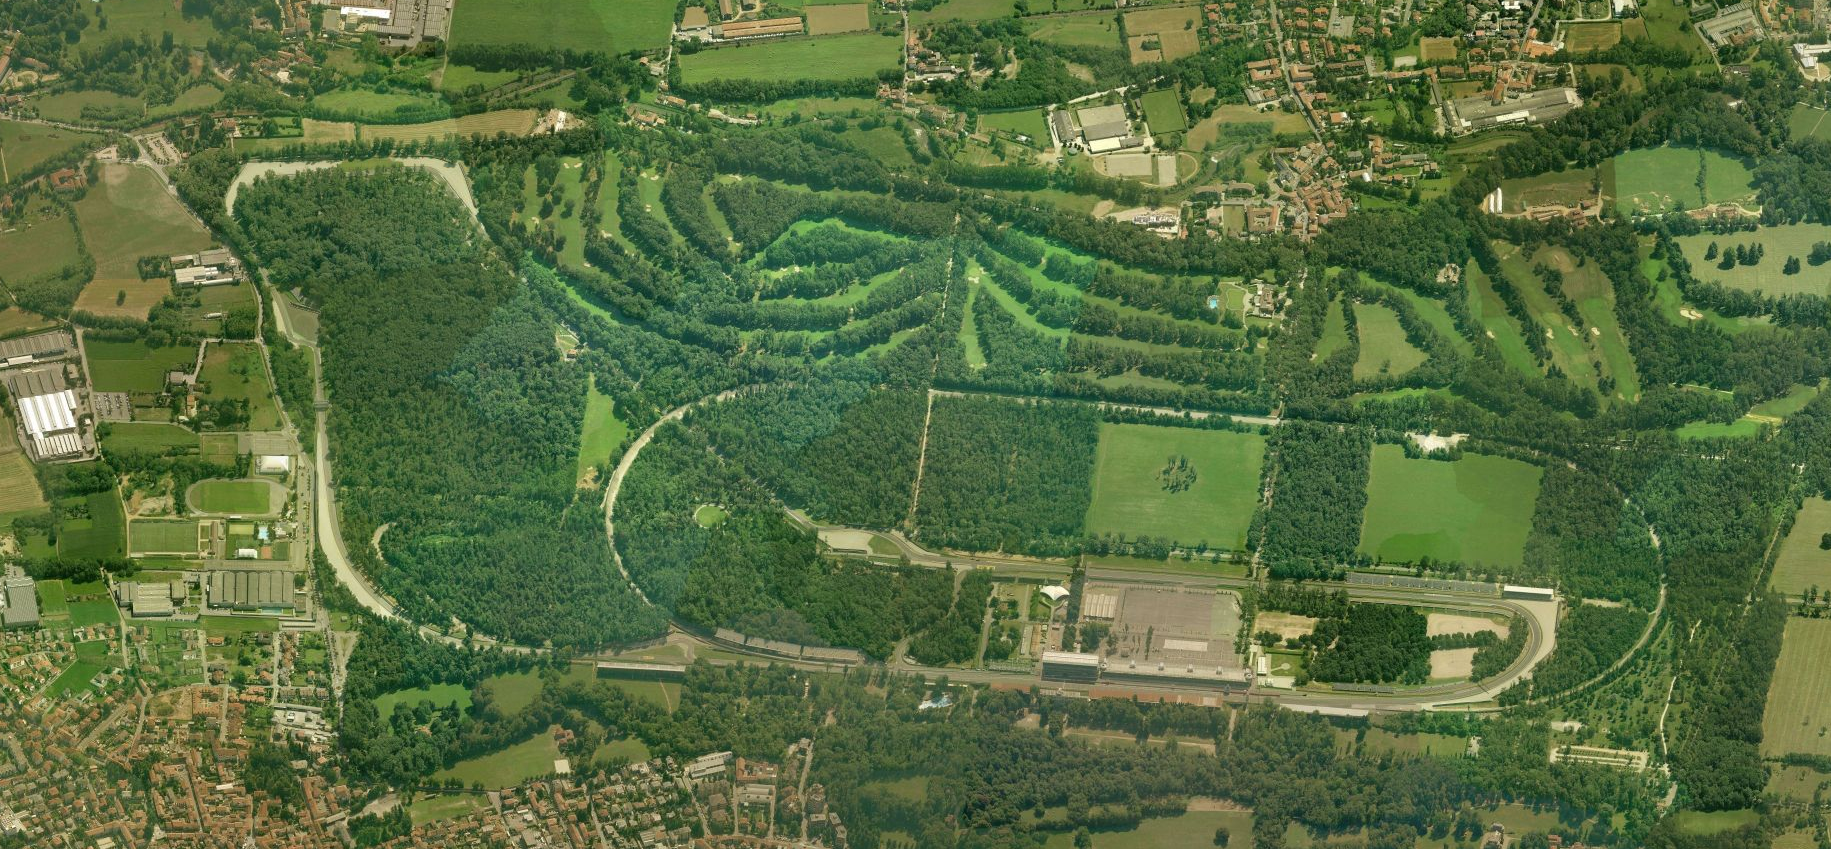 https://vignette.wikia.nocookie.net/gpgsuperleague/images/3/39/Monza_aerial.png/revision/latest?cb=20160507074356